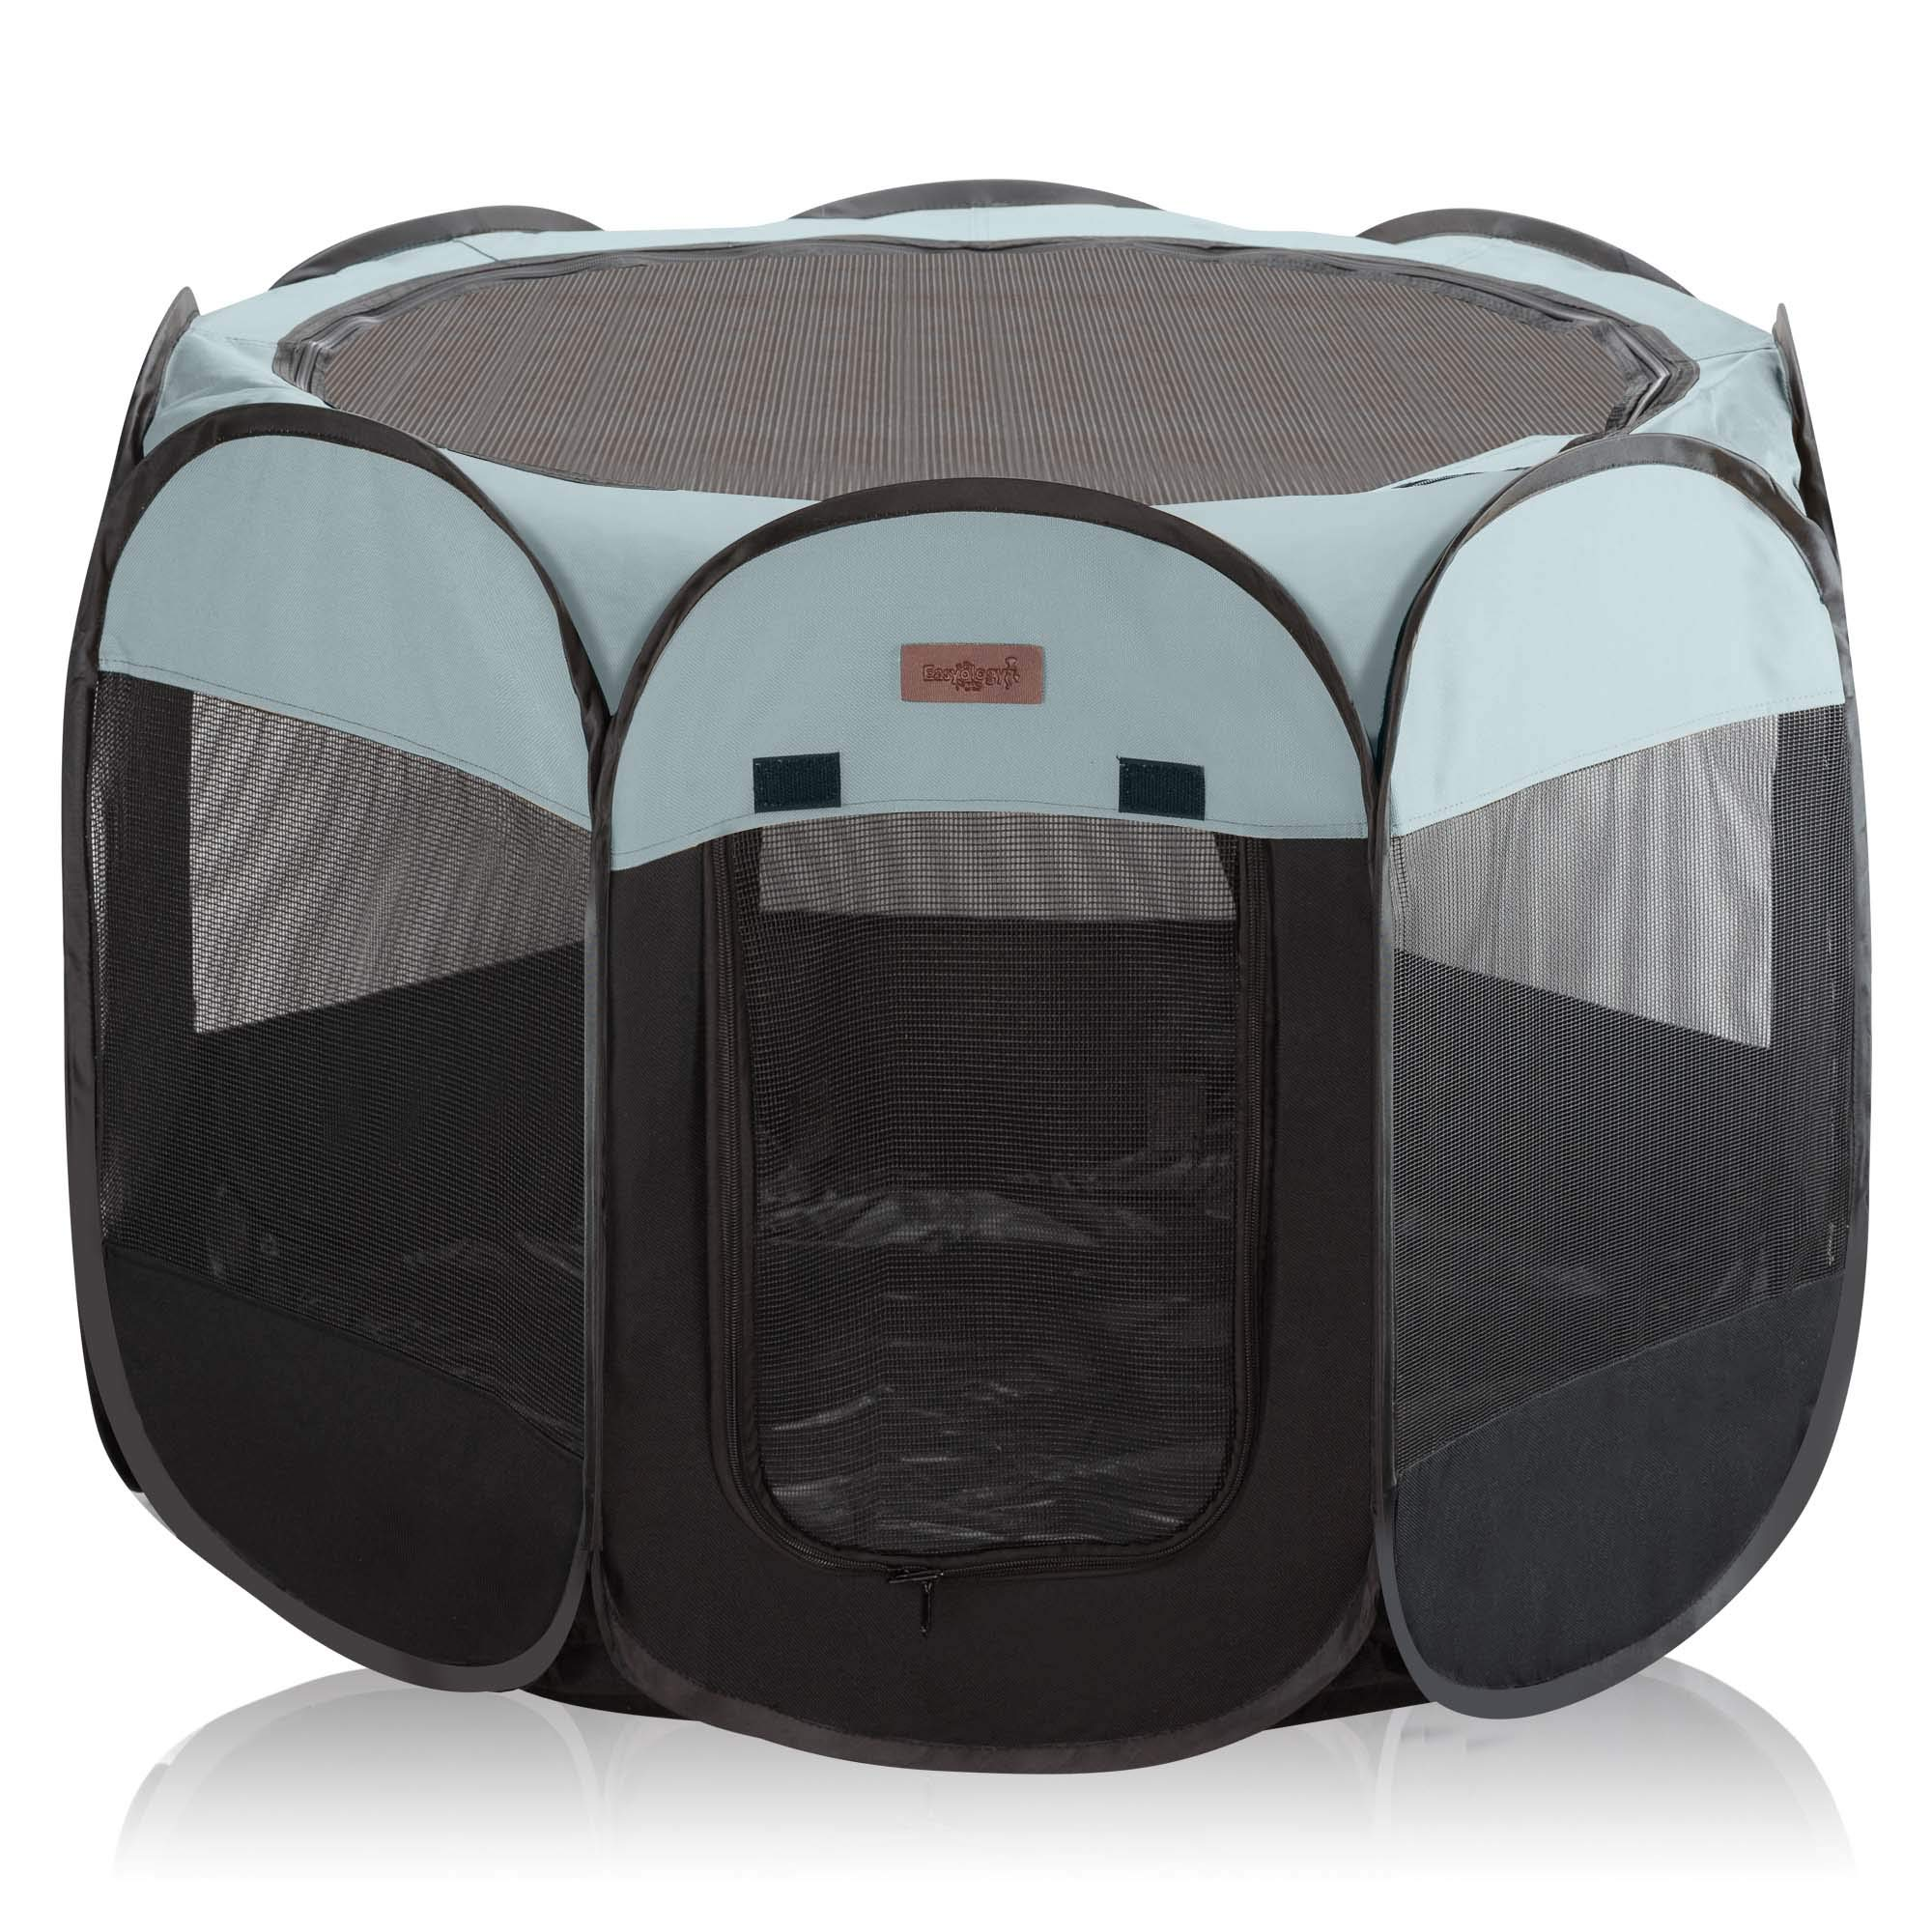 Pet Playpen for Indoor Cats and Small Dogs - 23'' Tall x 30'' Wide - Claw-Proof Mesh, Thick Zippered Foldable Pet Playpen - Travel Cat Kennel/Cat Crate with 10 Second Setup - Animal Playpen (Slate Gray)